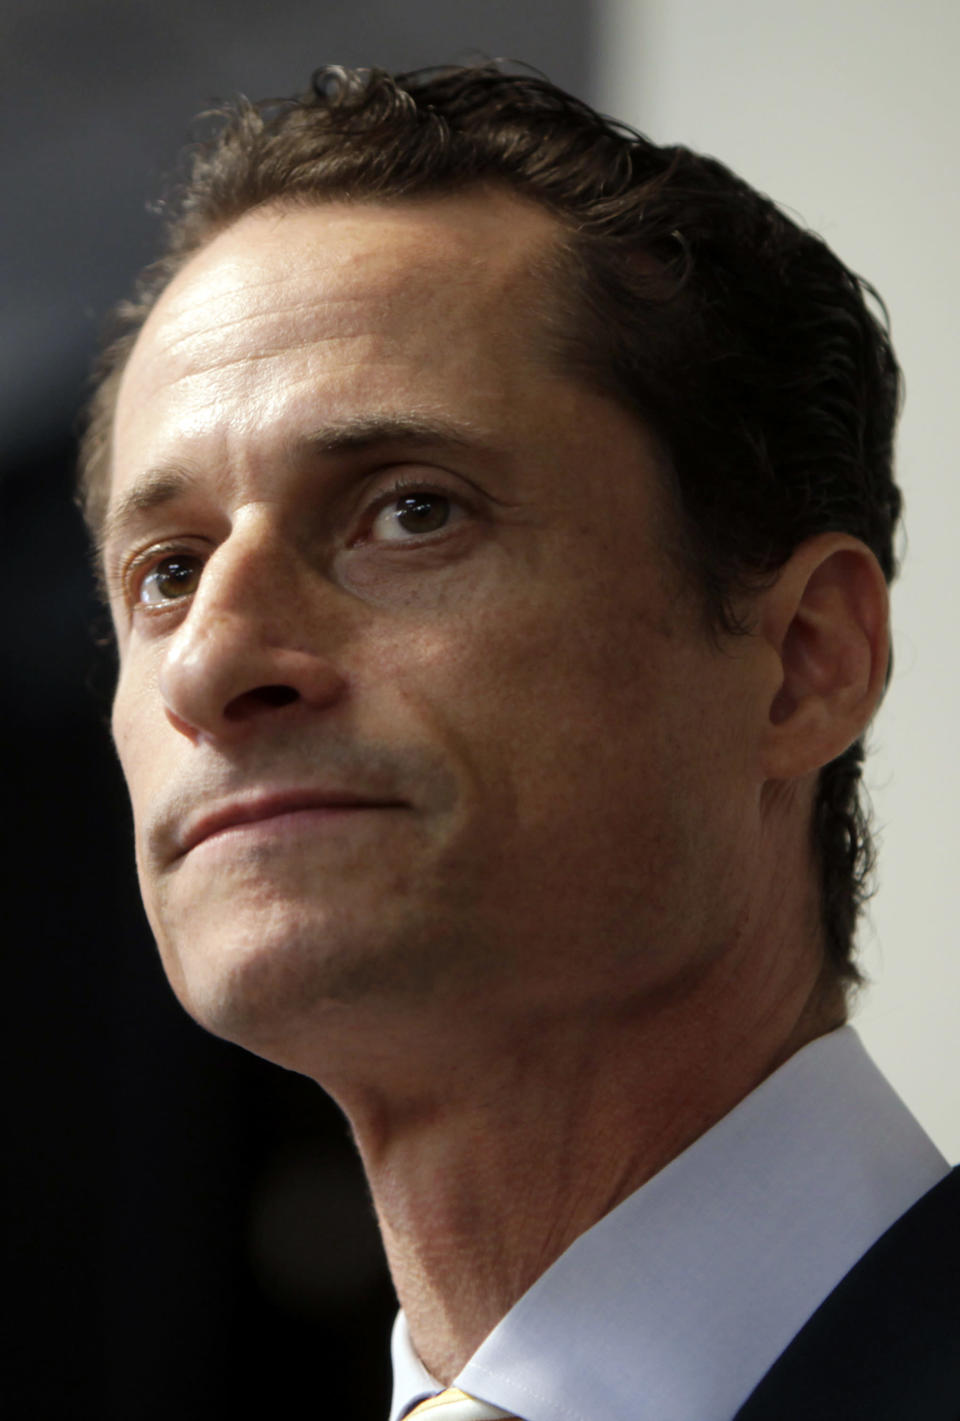 <b>Anthony Weiner</b> <p> Be careful what you tweet. Anthony Weiner, D- NY, at the time a rising Democratic star, became a laughing stock after it was revealed that he tweeted photos of himself in boxer shorts. At first, Weiner claimed his Twitter account had been hacked. But an investigation by right-wing blogger Andrew Breitbart proved that Weiner was just inept. Weiner resigned a short time later, another casualty of social media. ― M.K. (Seth Wenig/AP Photo)</p>